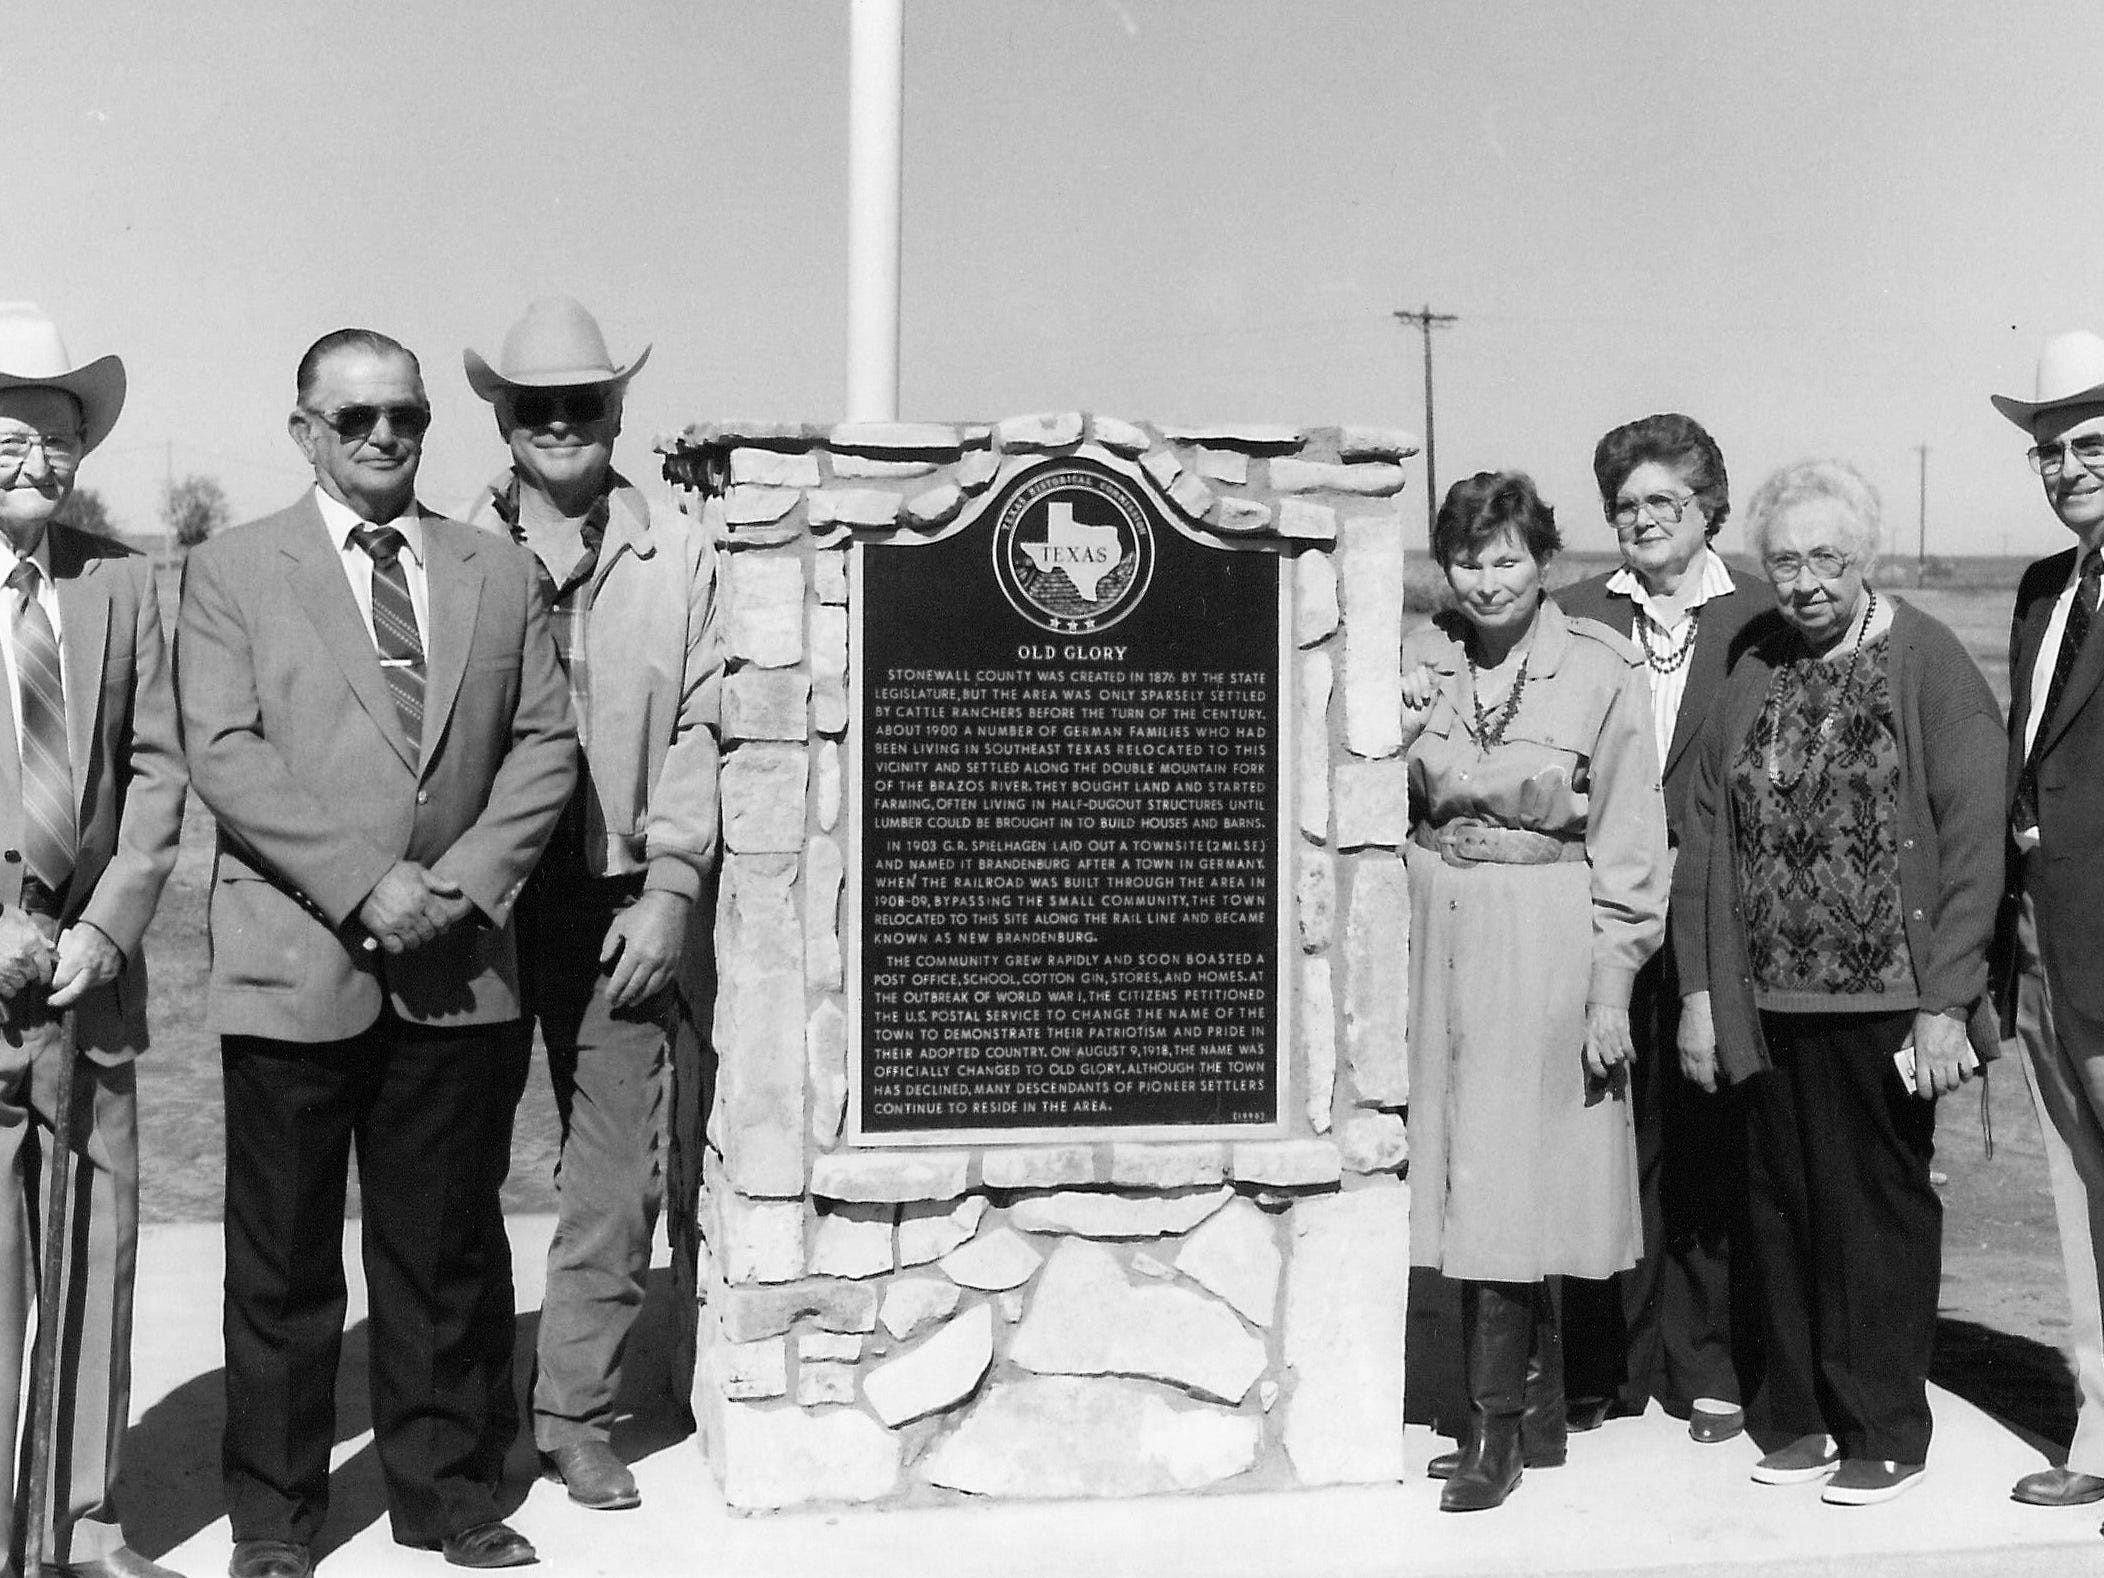 Among those who worked on a historical marker for Old Glory in 1990 were, from left, A.R. Sawyers, Stonewall County Judge Ed Wolsch, George Weiser, Beth Weiser, Hazel Letz, Bernice White and P.C. Carr.